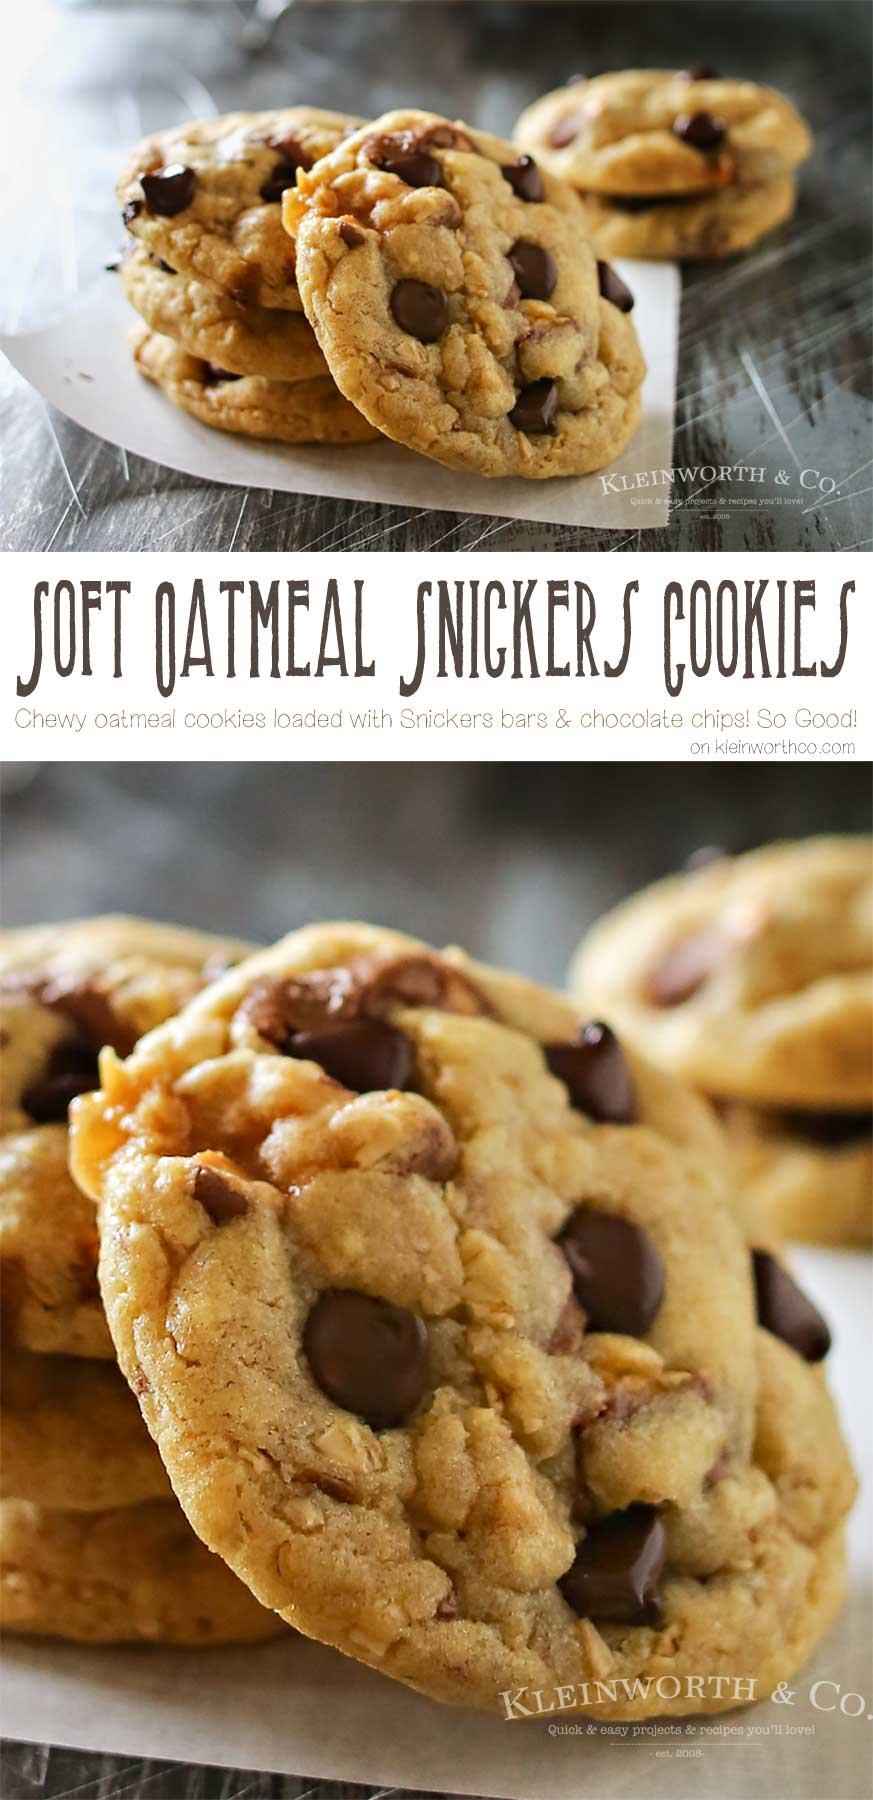 Soft Oatmeal Snickers Cookies - how to make